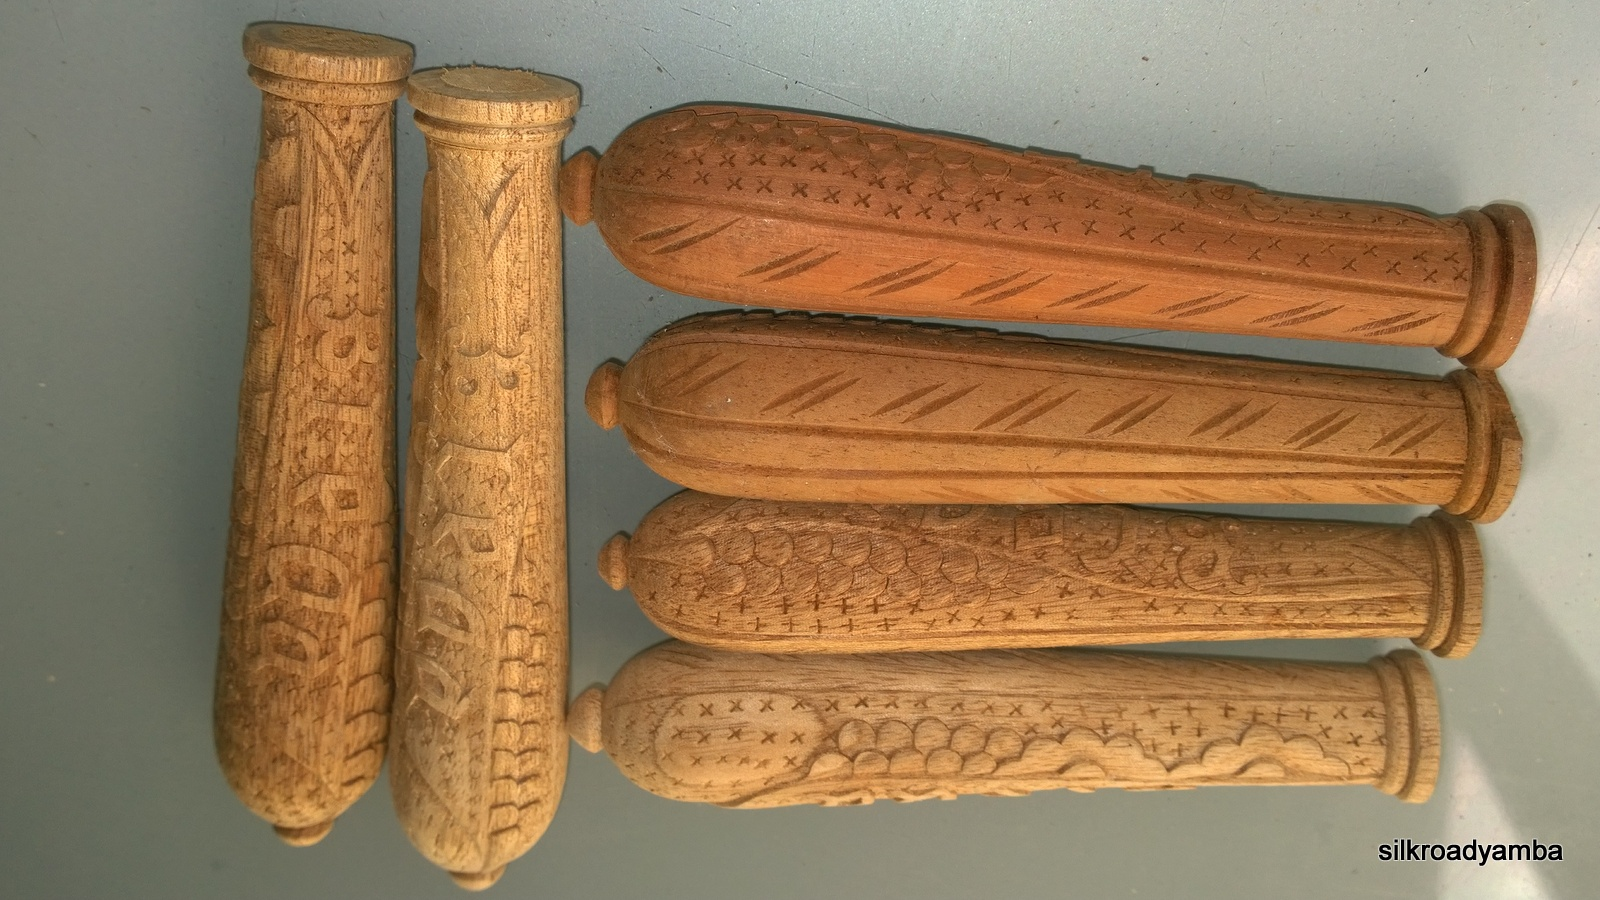 6 Wooden Bread Knife Handles Hand Made Carved Bread